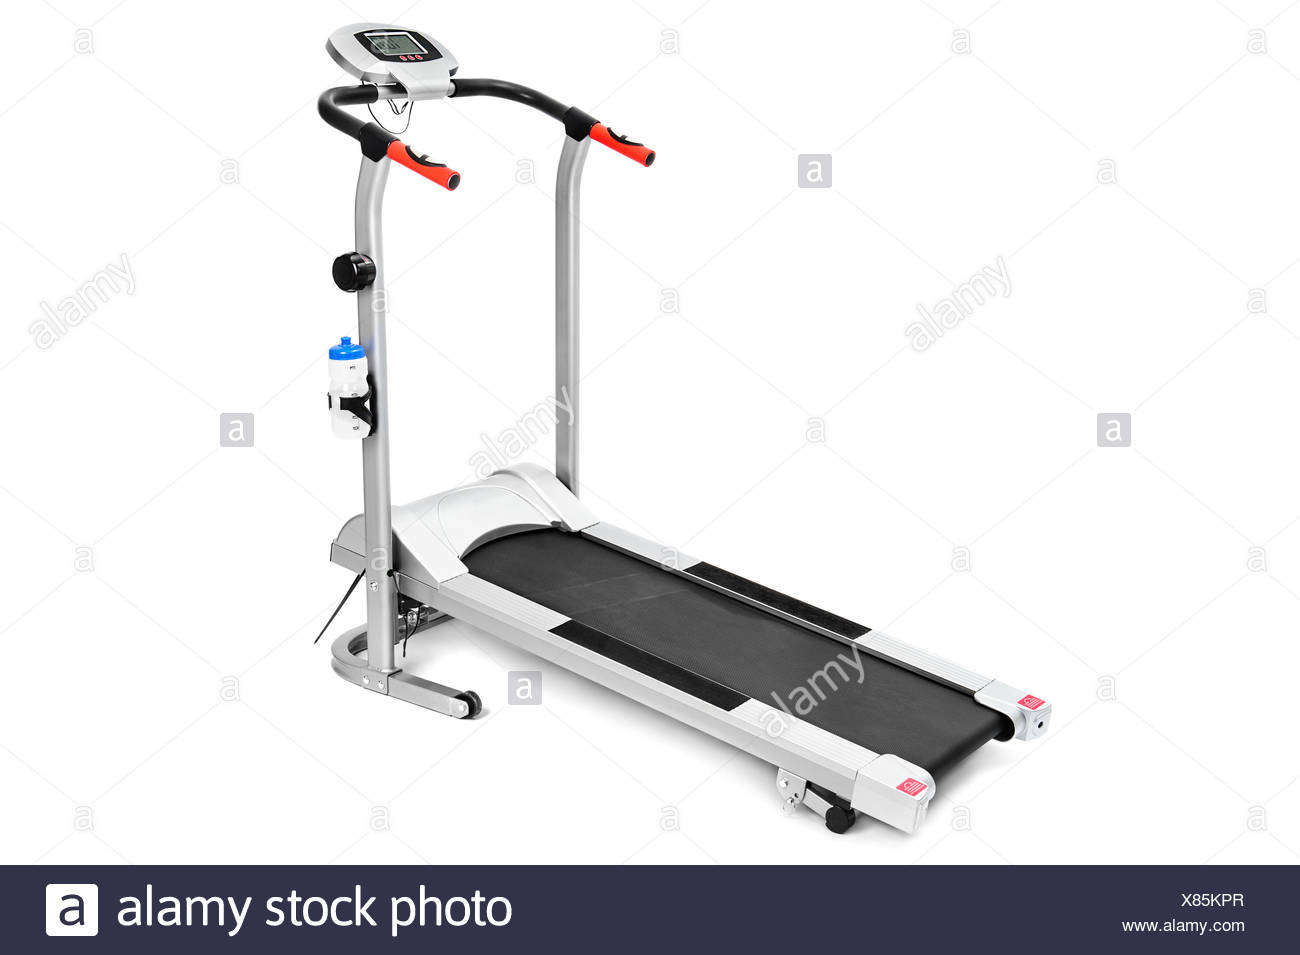 gym equipment, treadmill for cardio workouts - Stock Image